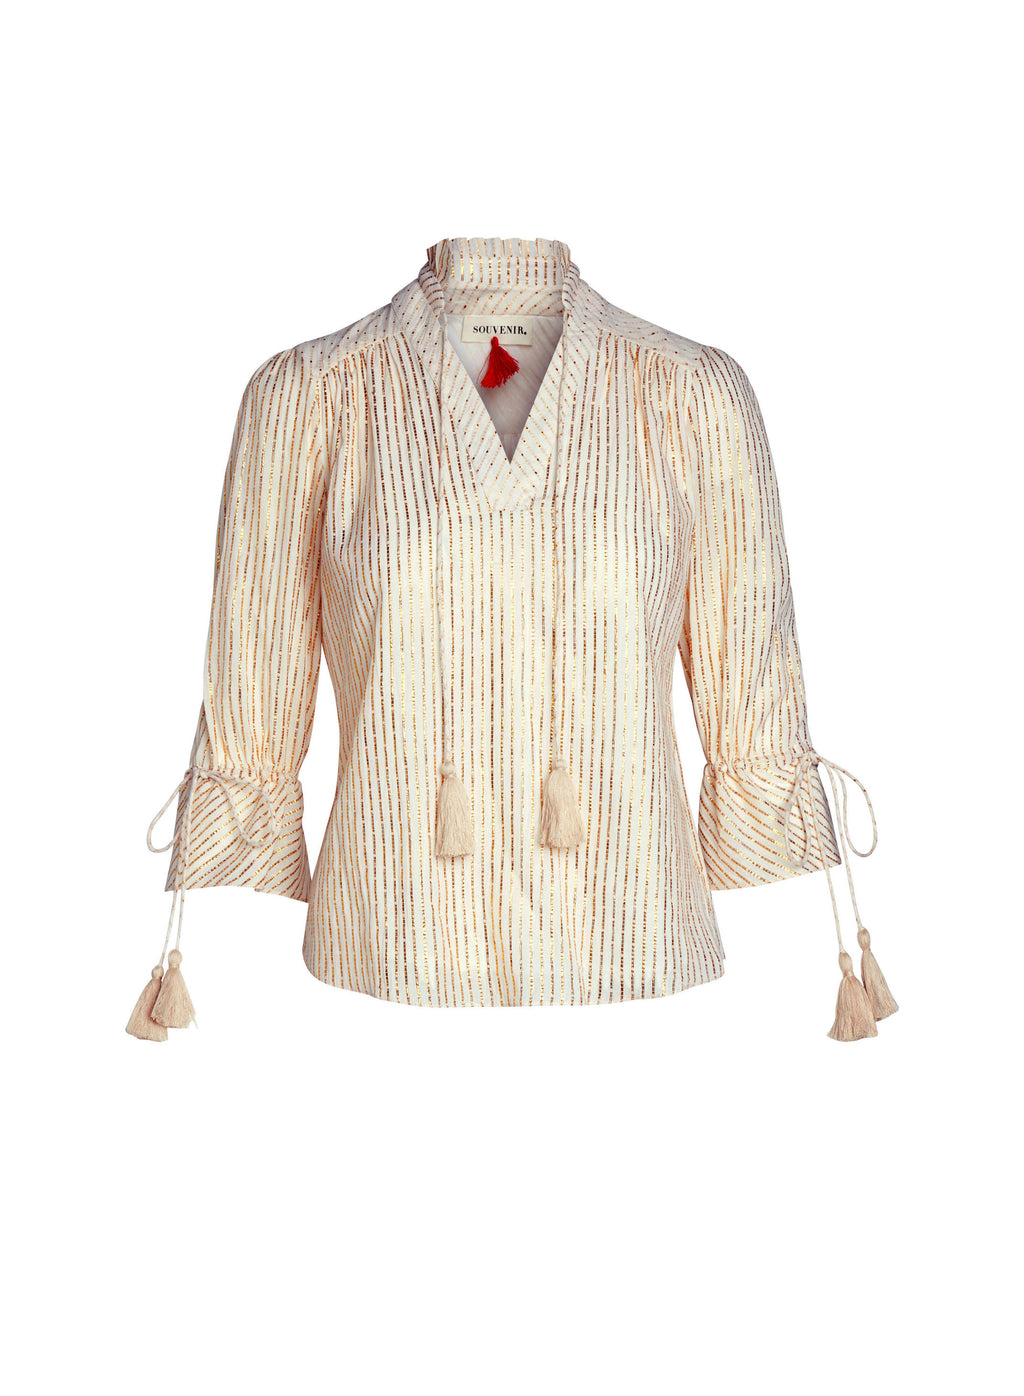 GOLD METALLIC STRIPE BLOUSE TOP